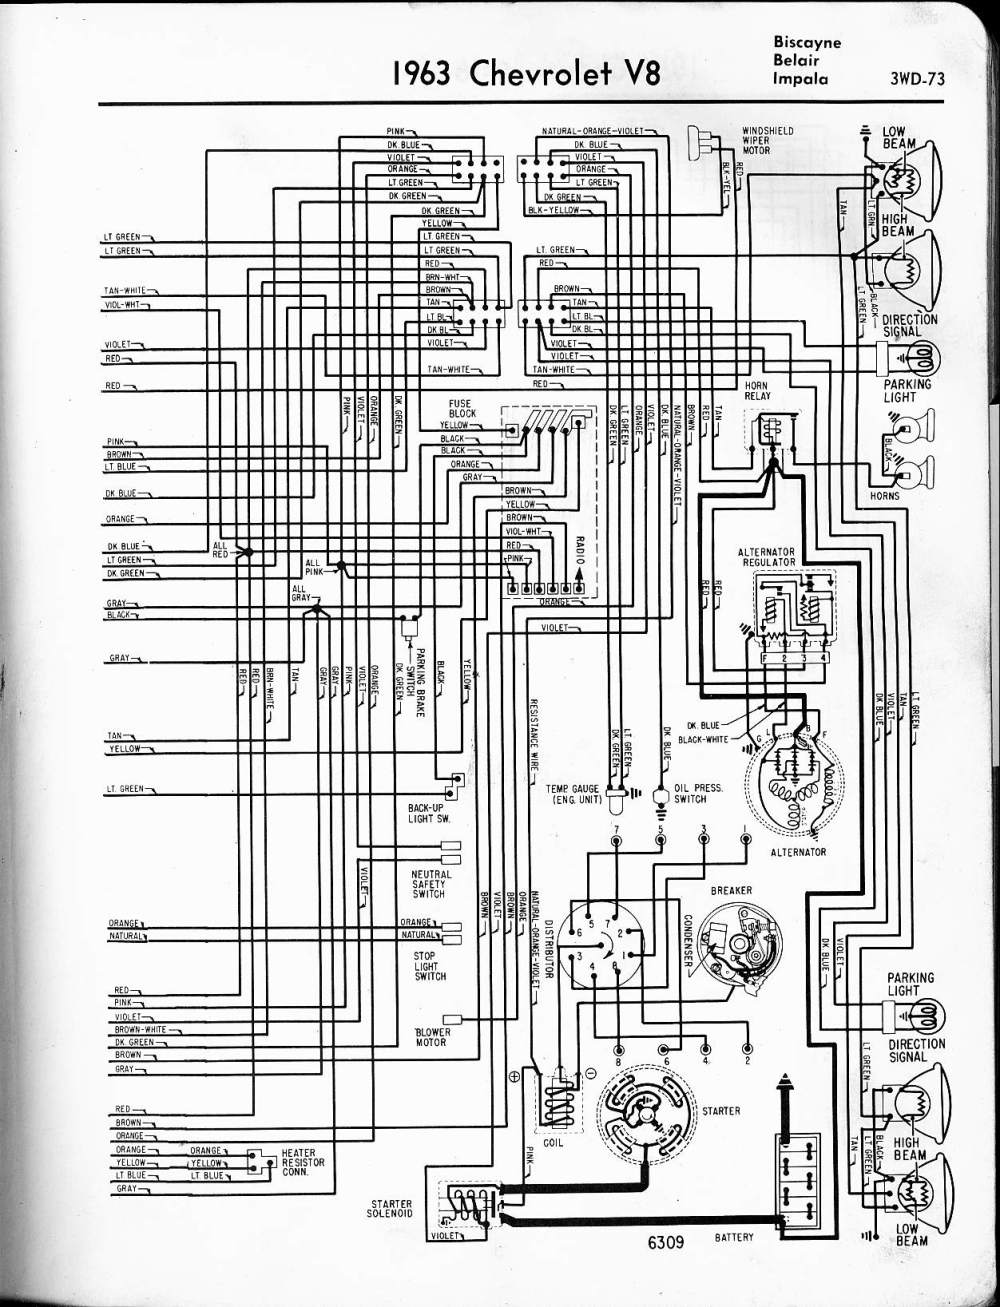 medium resolution of 57 65 chevy wiring diagrams 1981 camaro wiring 1963 v8 biscayne belair impala right